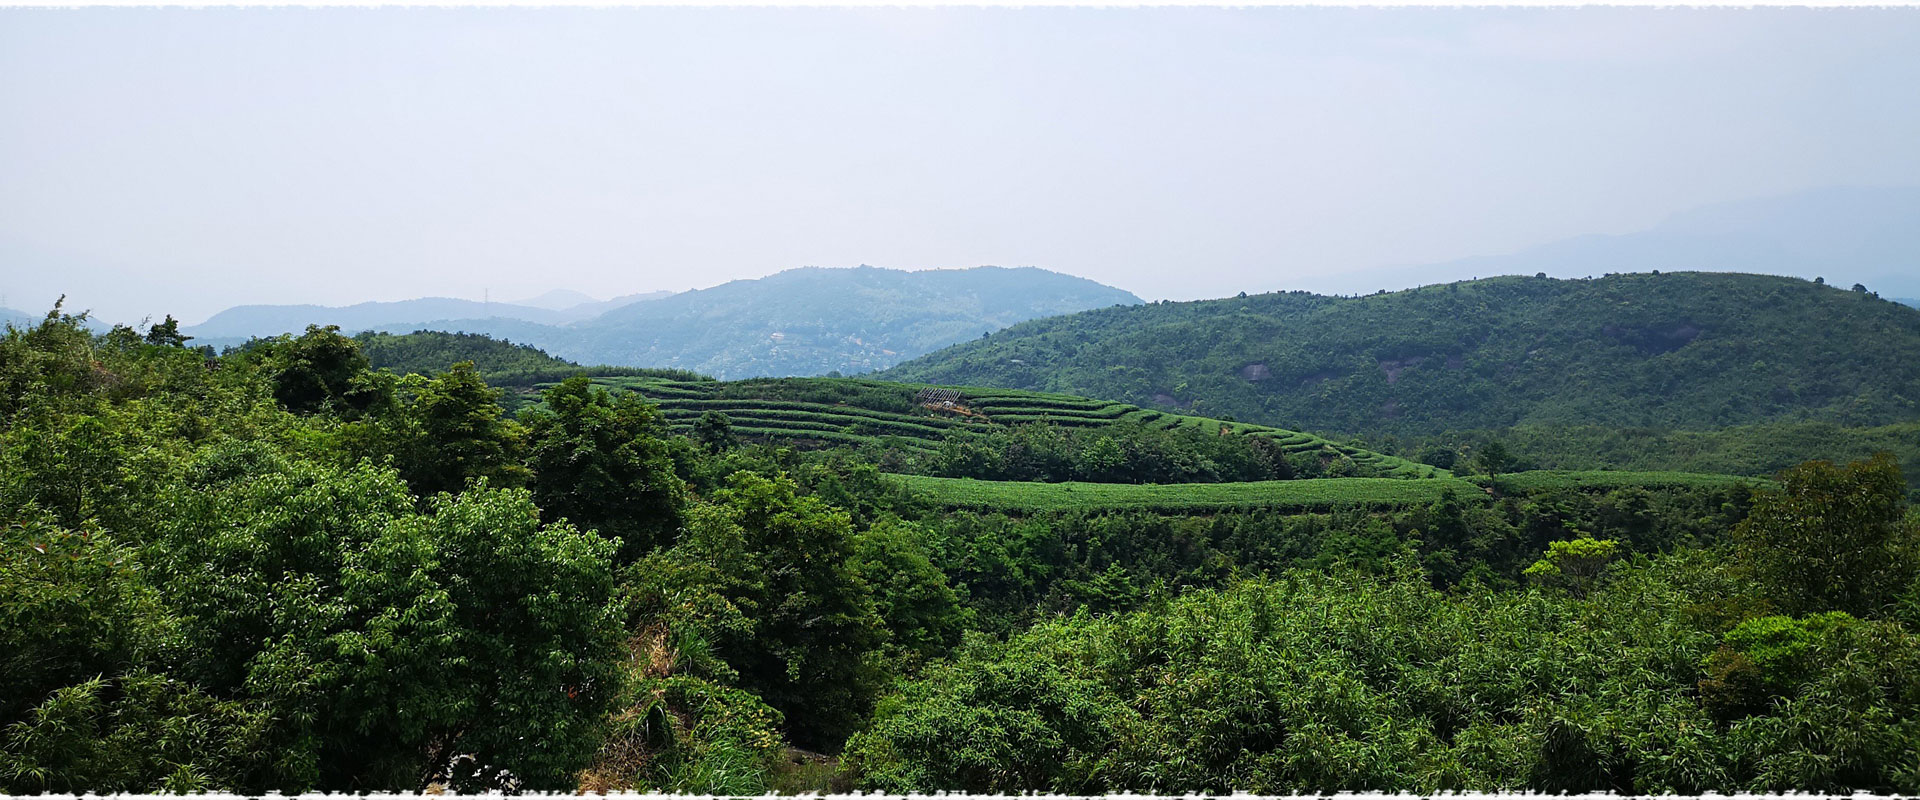 Chaitou Shan Tea Garden